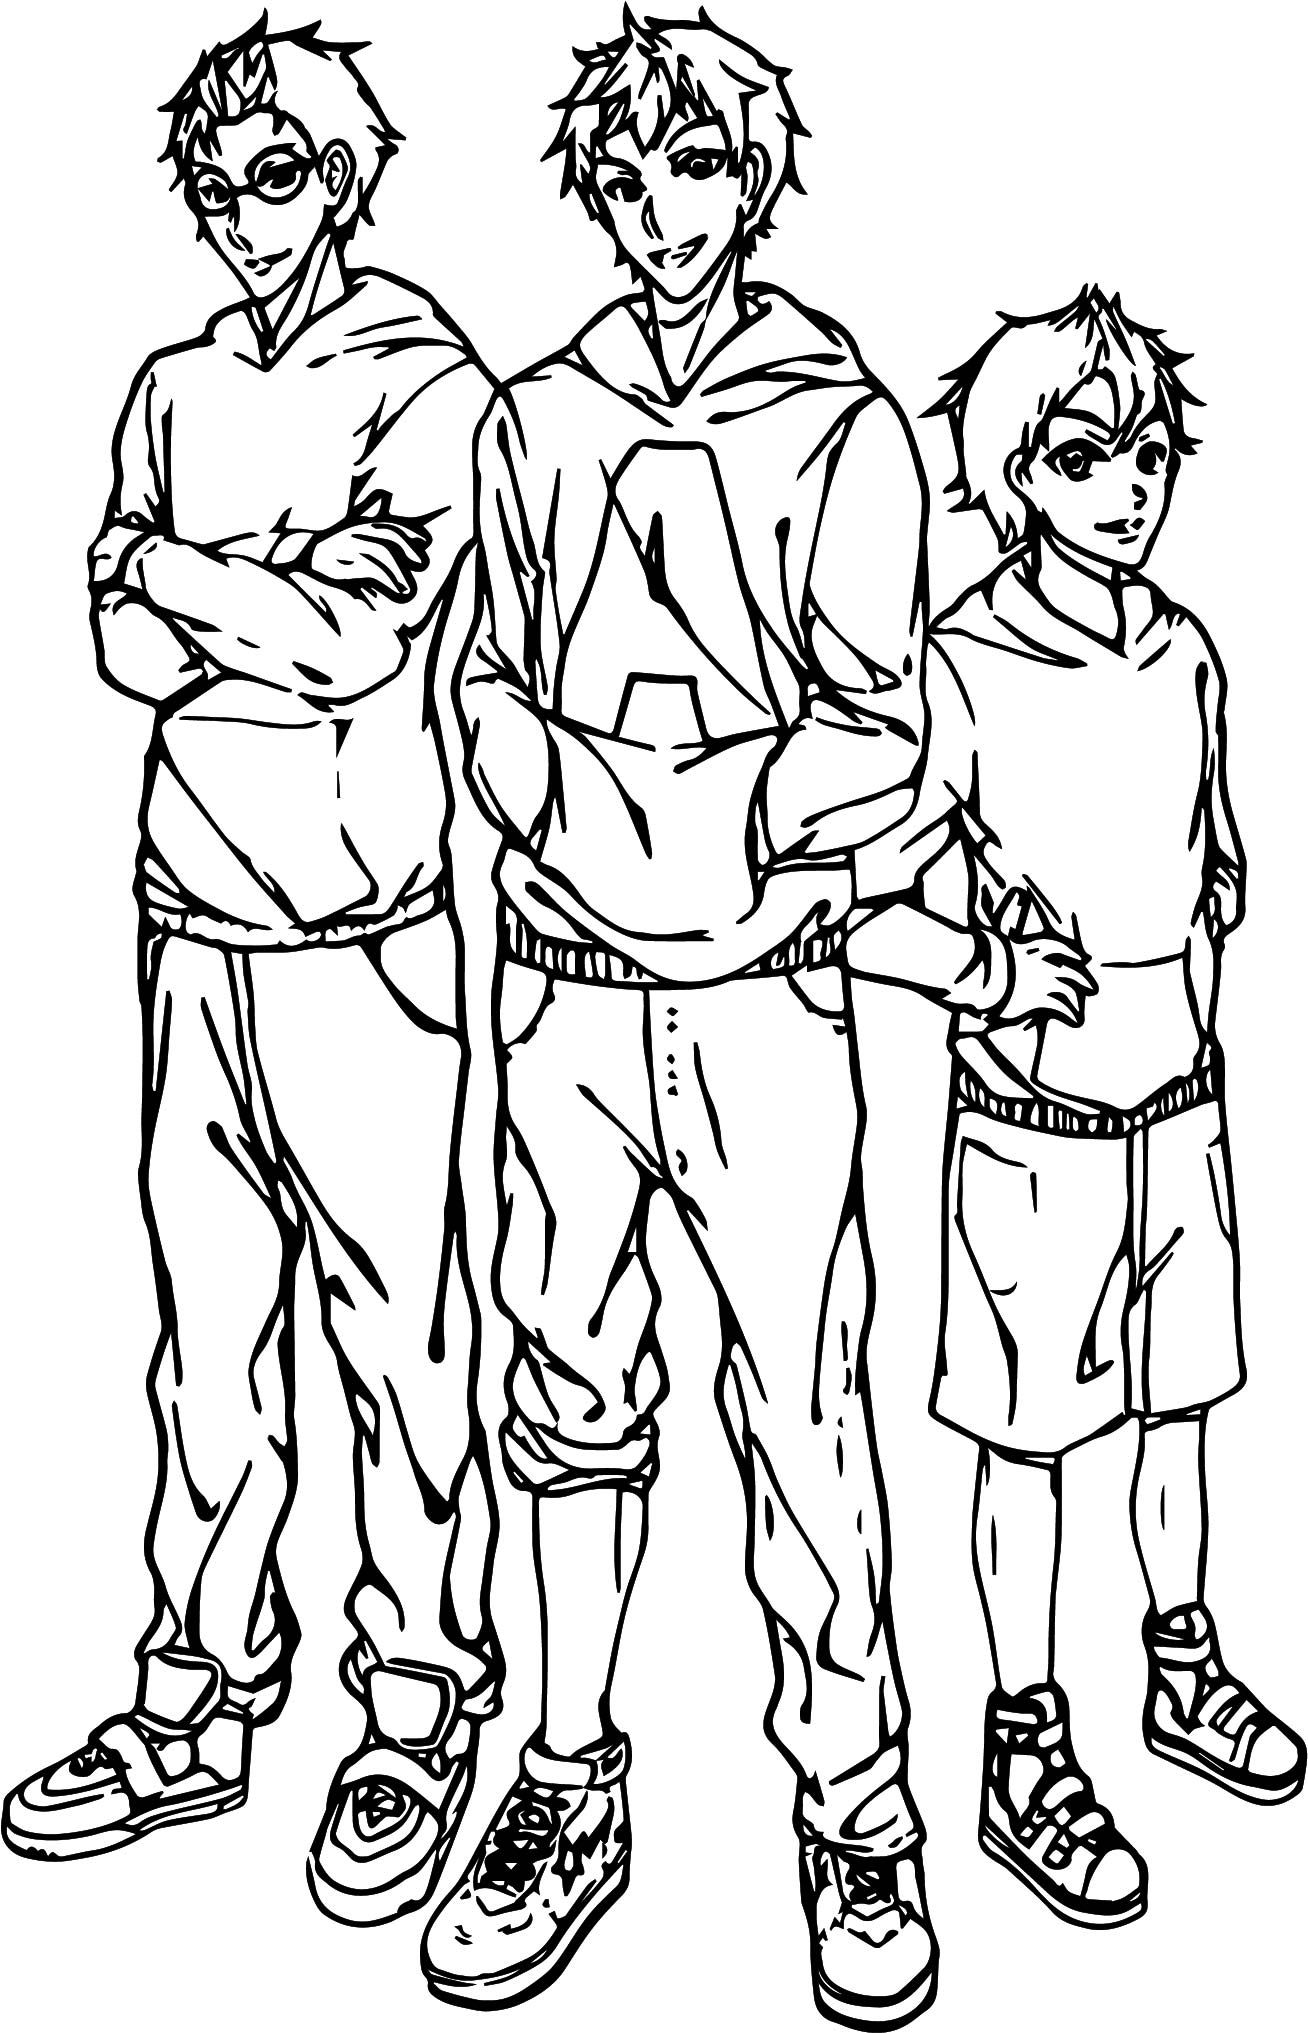 Awesome Alvin And Chipmunks Basketball Team Coloring Page Basketball Teams Sports Coloring Pages Football Coloring Pages